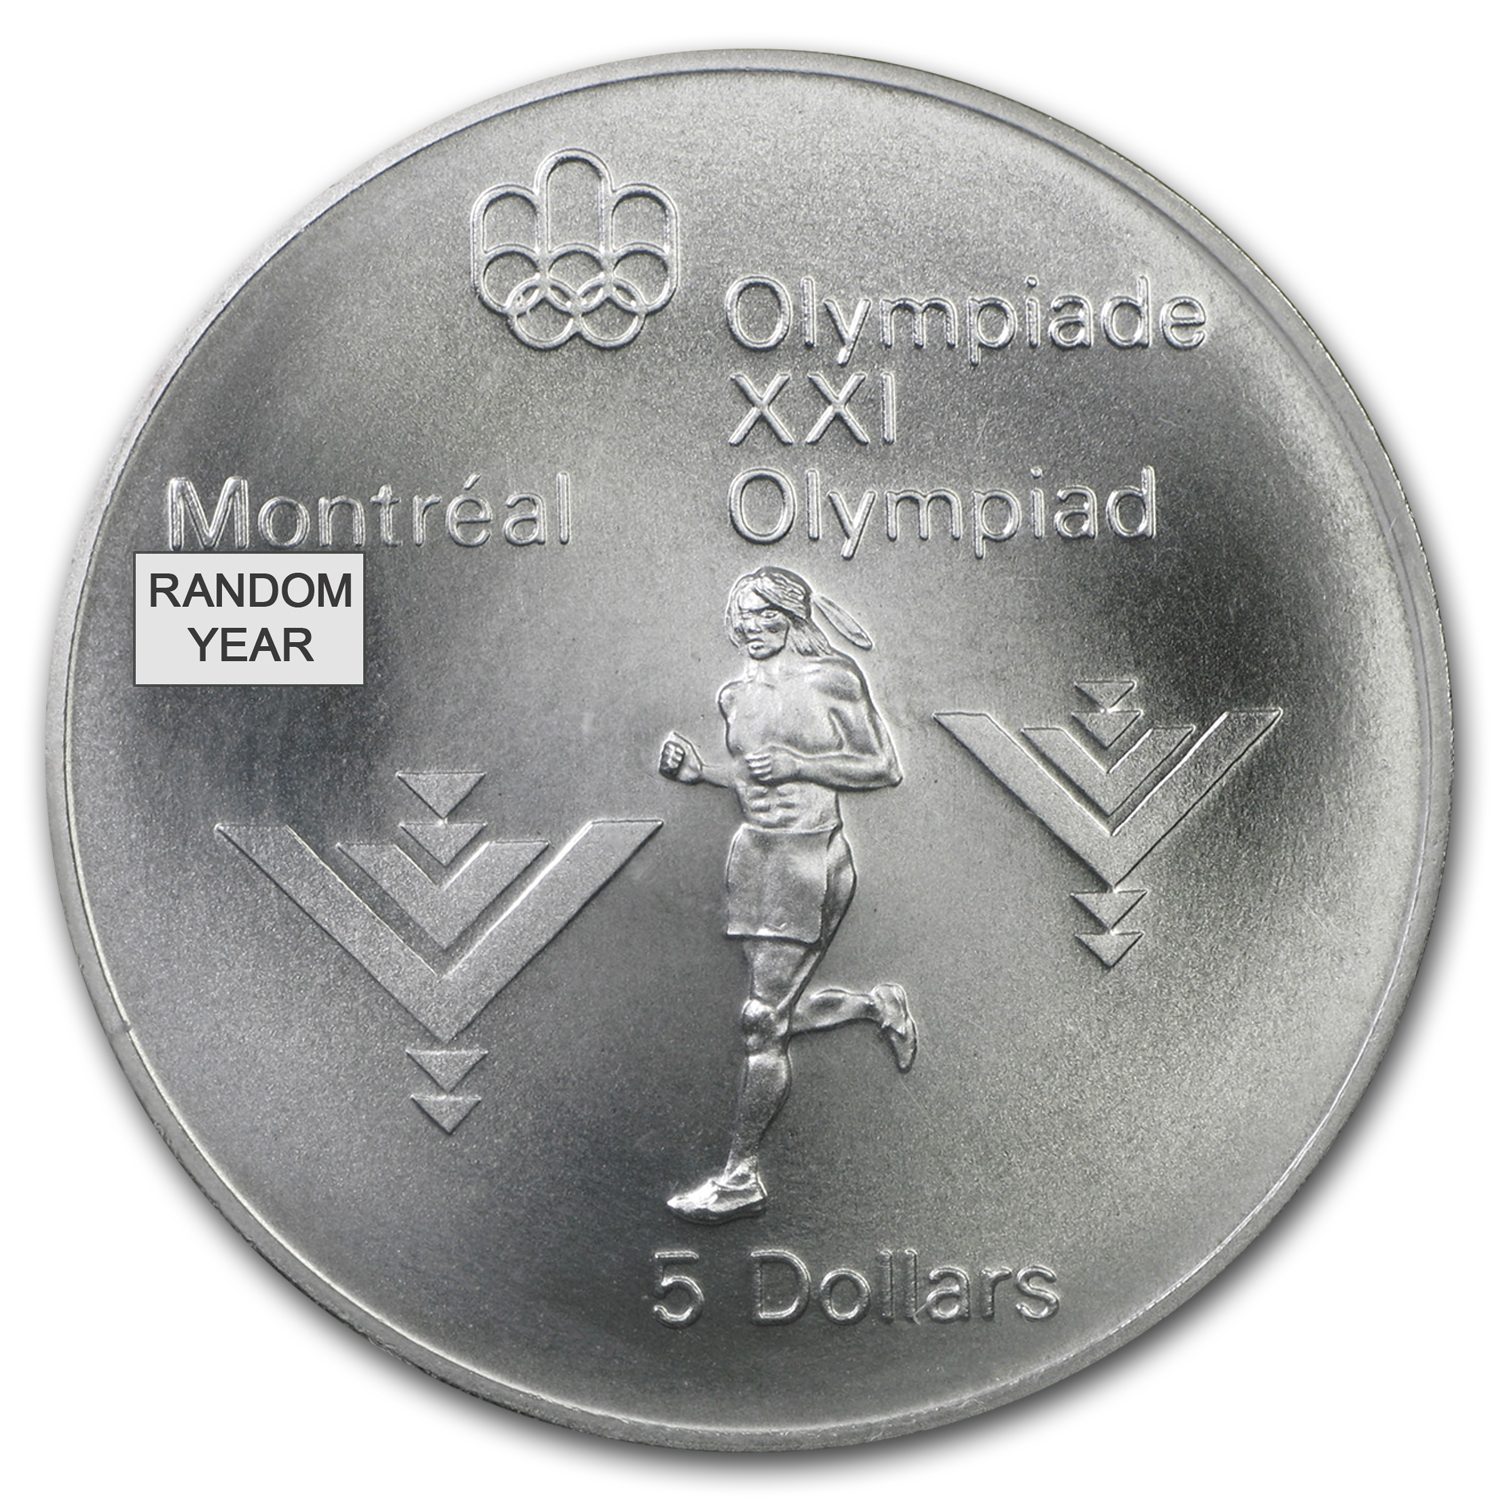 1973-1976 Canada $5 Olympic Silver Coin BU/Proof (ASW .7227 oz)